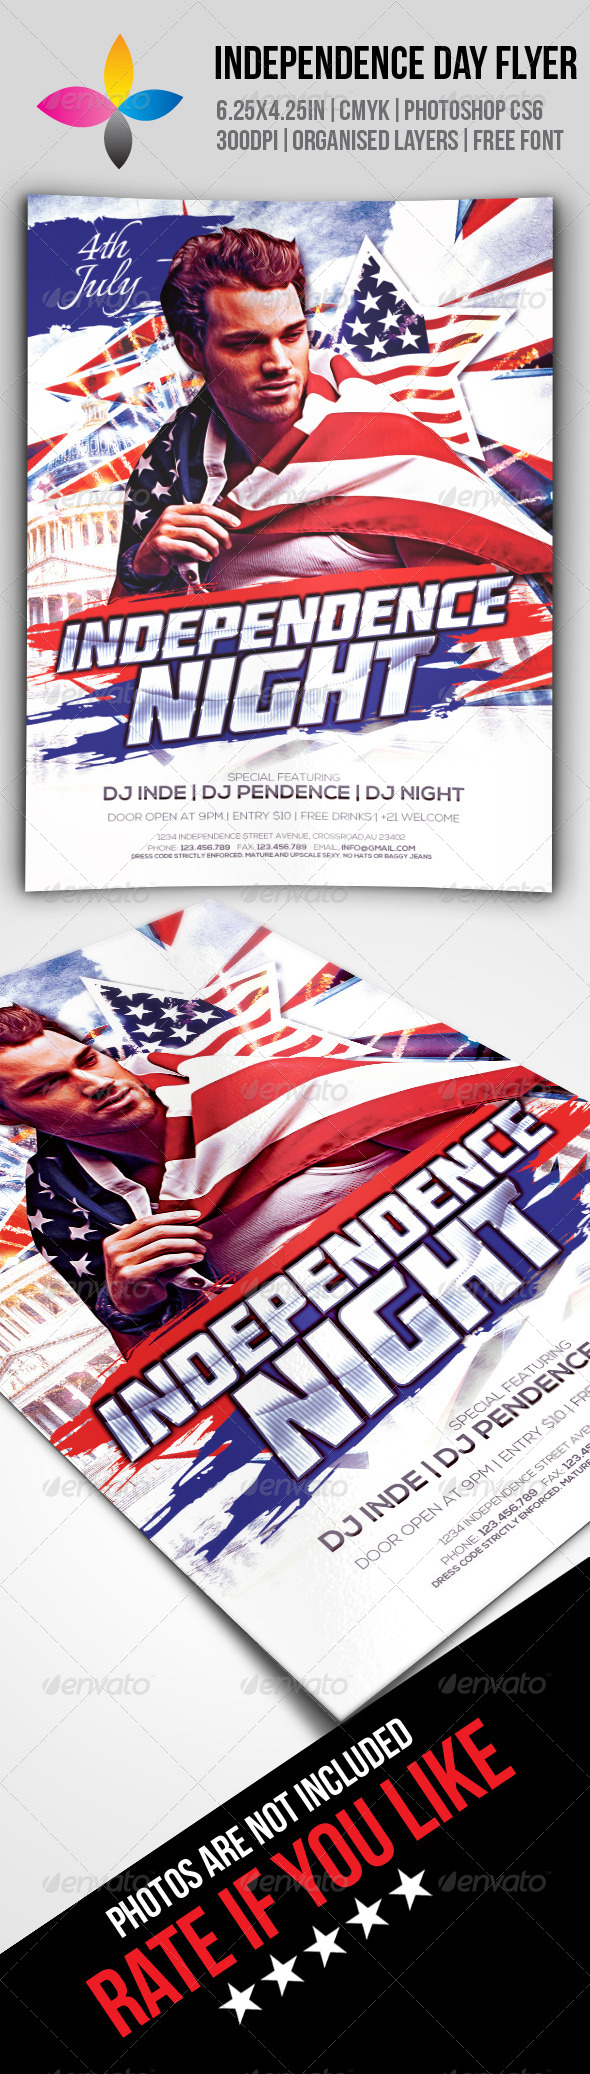 GraphicRiver Independence Day Flyer 7921454